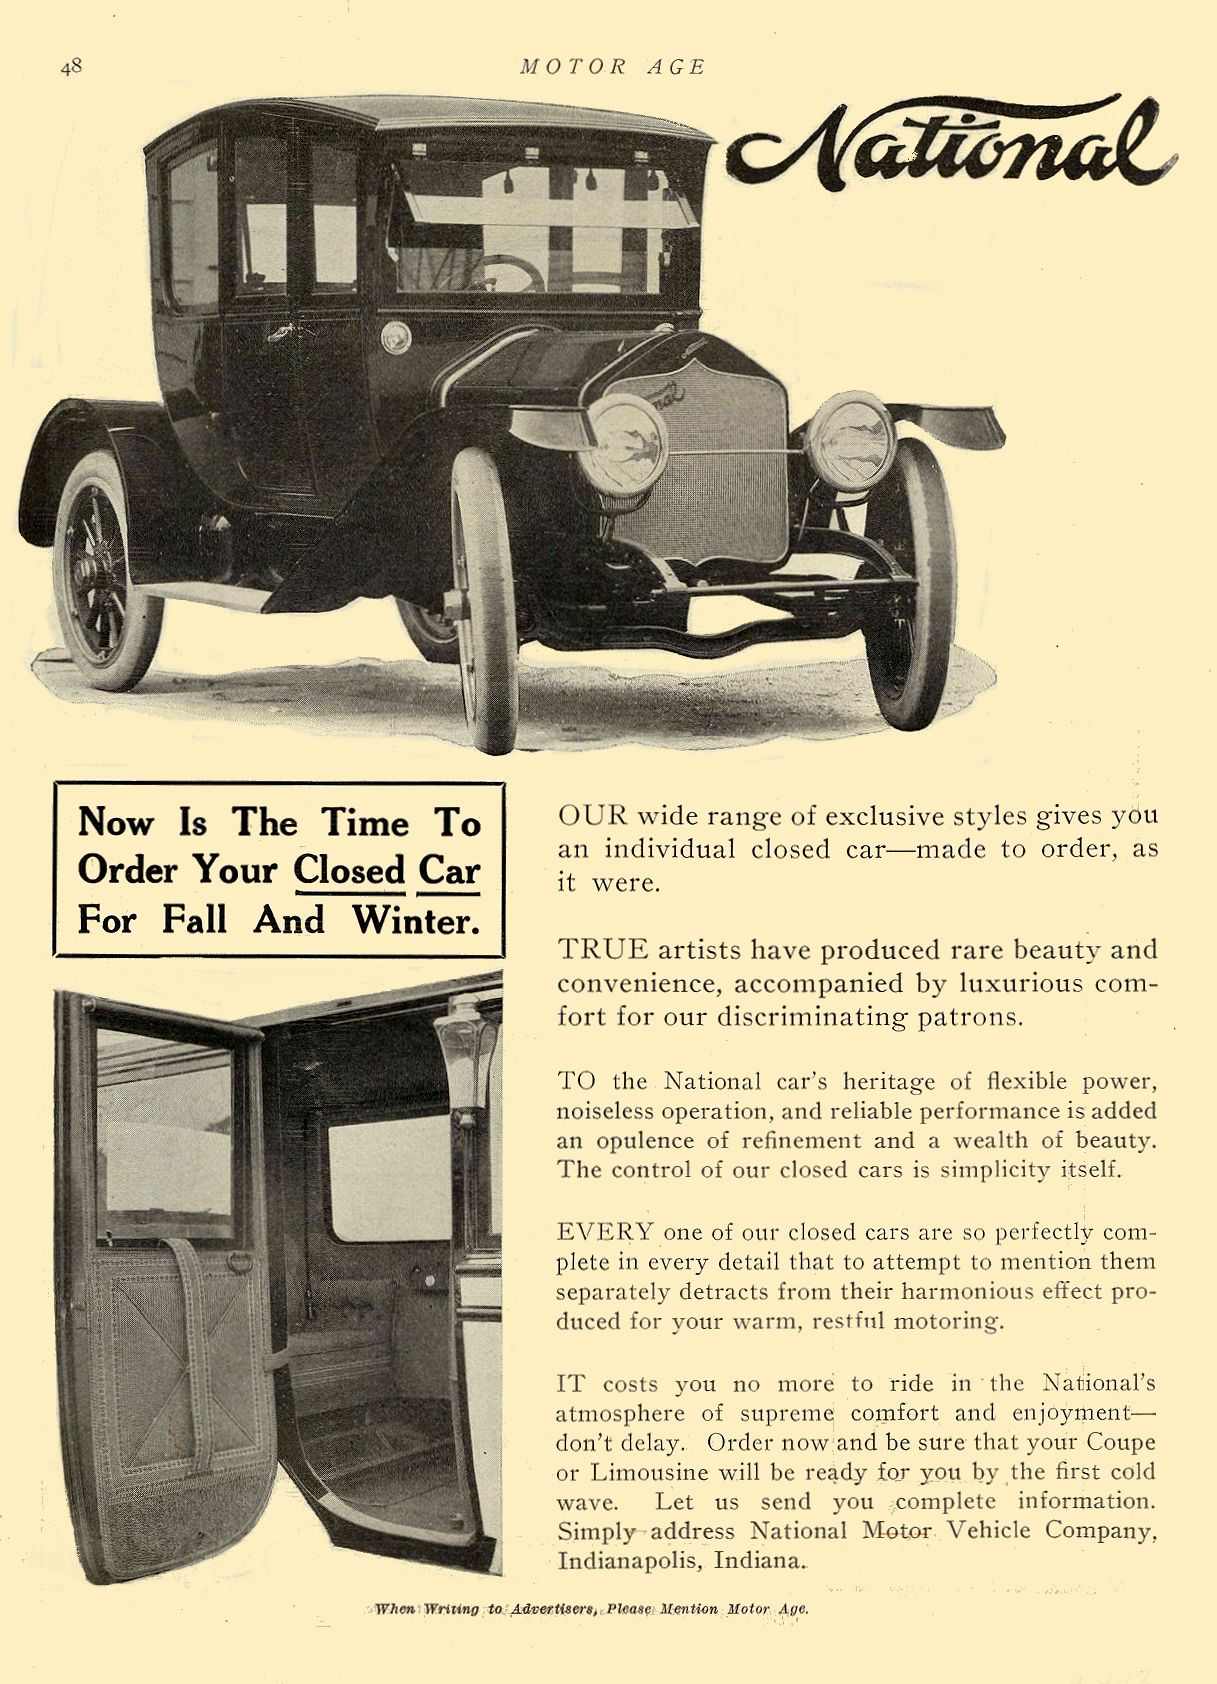 1913 9 4 NATIONAL Now Is The Time To Order Your Closed Car For Fall And Winter National Motor Vehicle Company Indianapolis, IND MOTOR AGE September 4, 1913 8.5″x12″ page 48